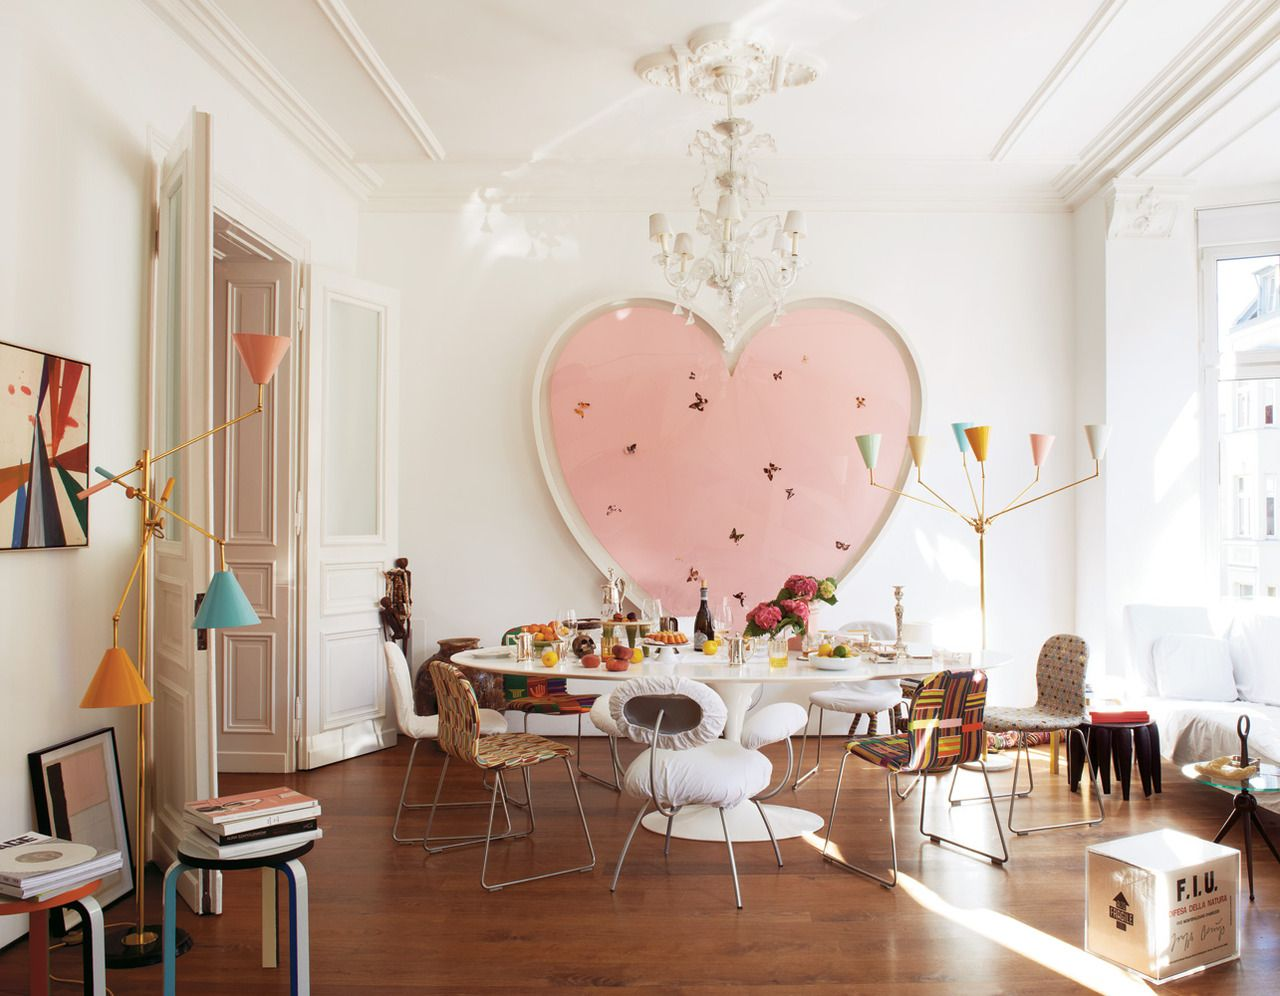 Home interiors and gifts paintings - Mike Meir And Michelle Elie Via T Mag Heart Art By Damien Hirst